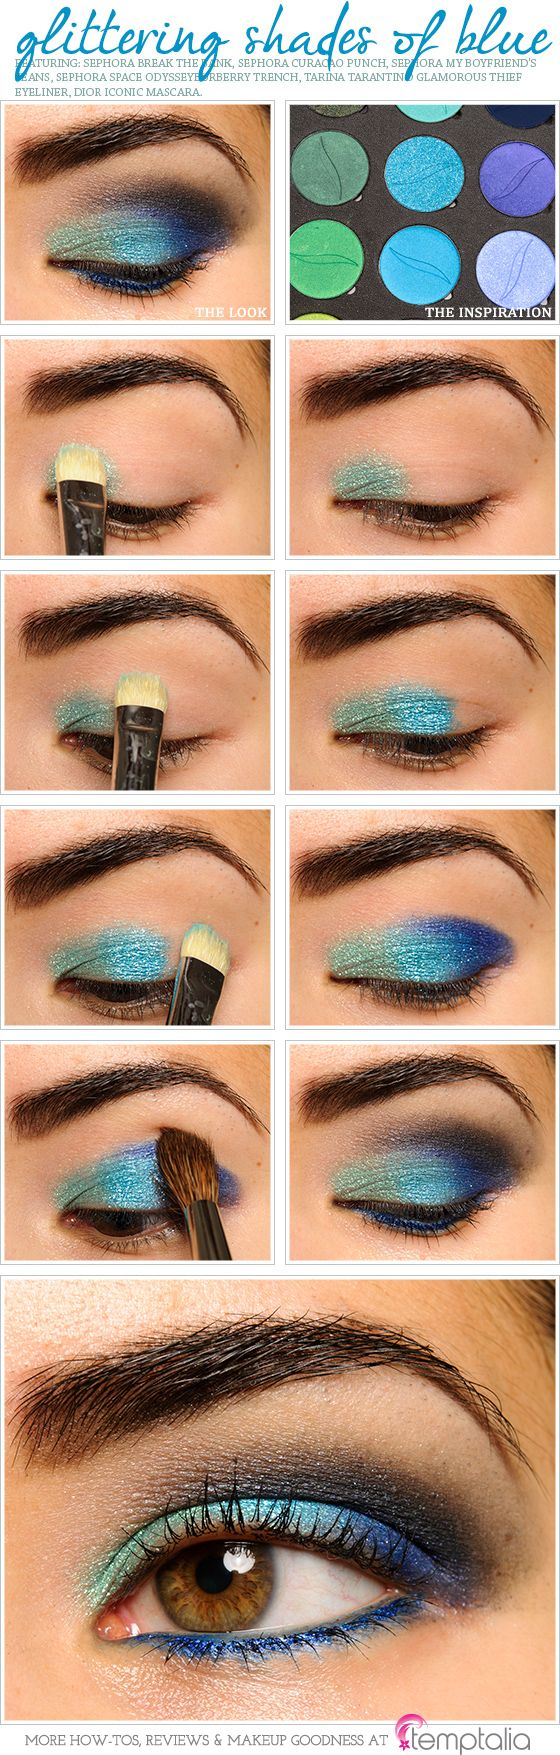 Homecoming Makeup For Blue Eyes 27 Pretty Makeup Tutorials For Brown Eyes Styles Weekly